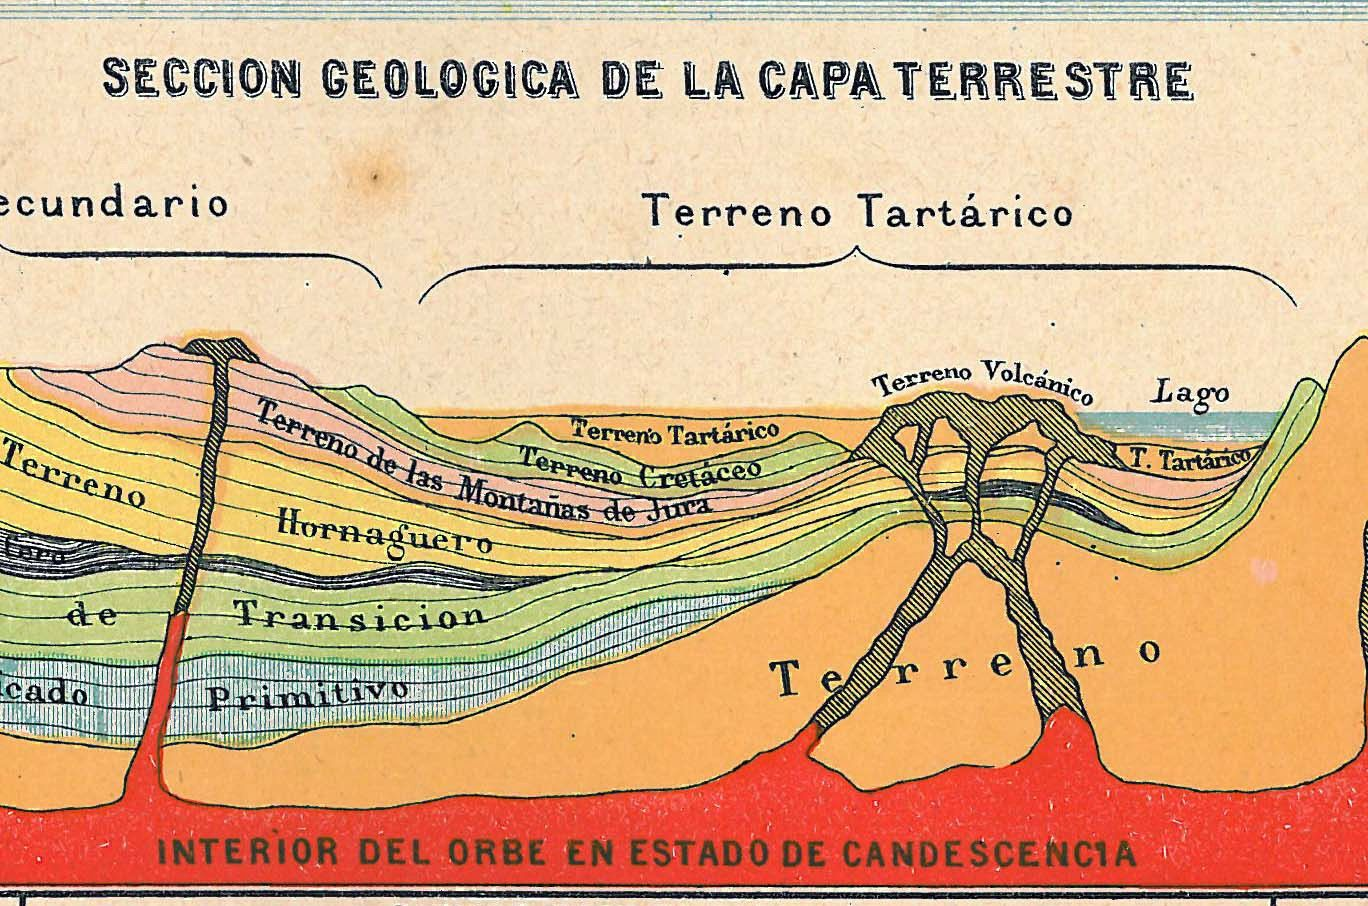 Vintage Print Of The Earth Geological Cross Sections